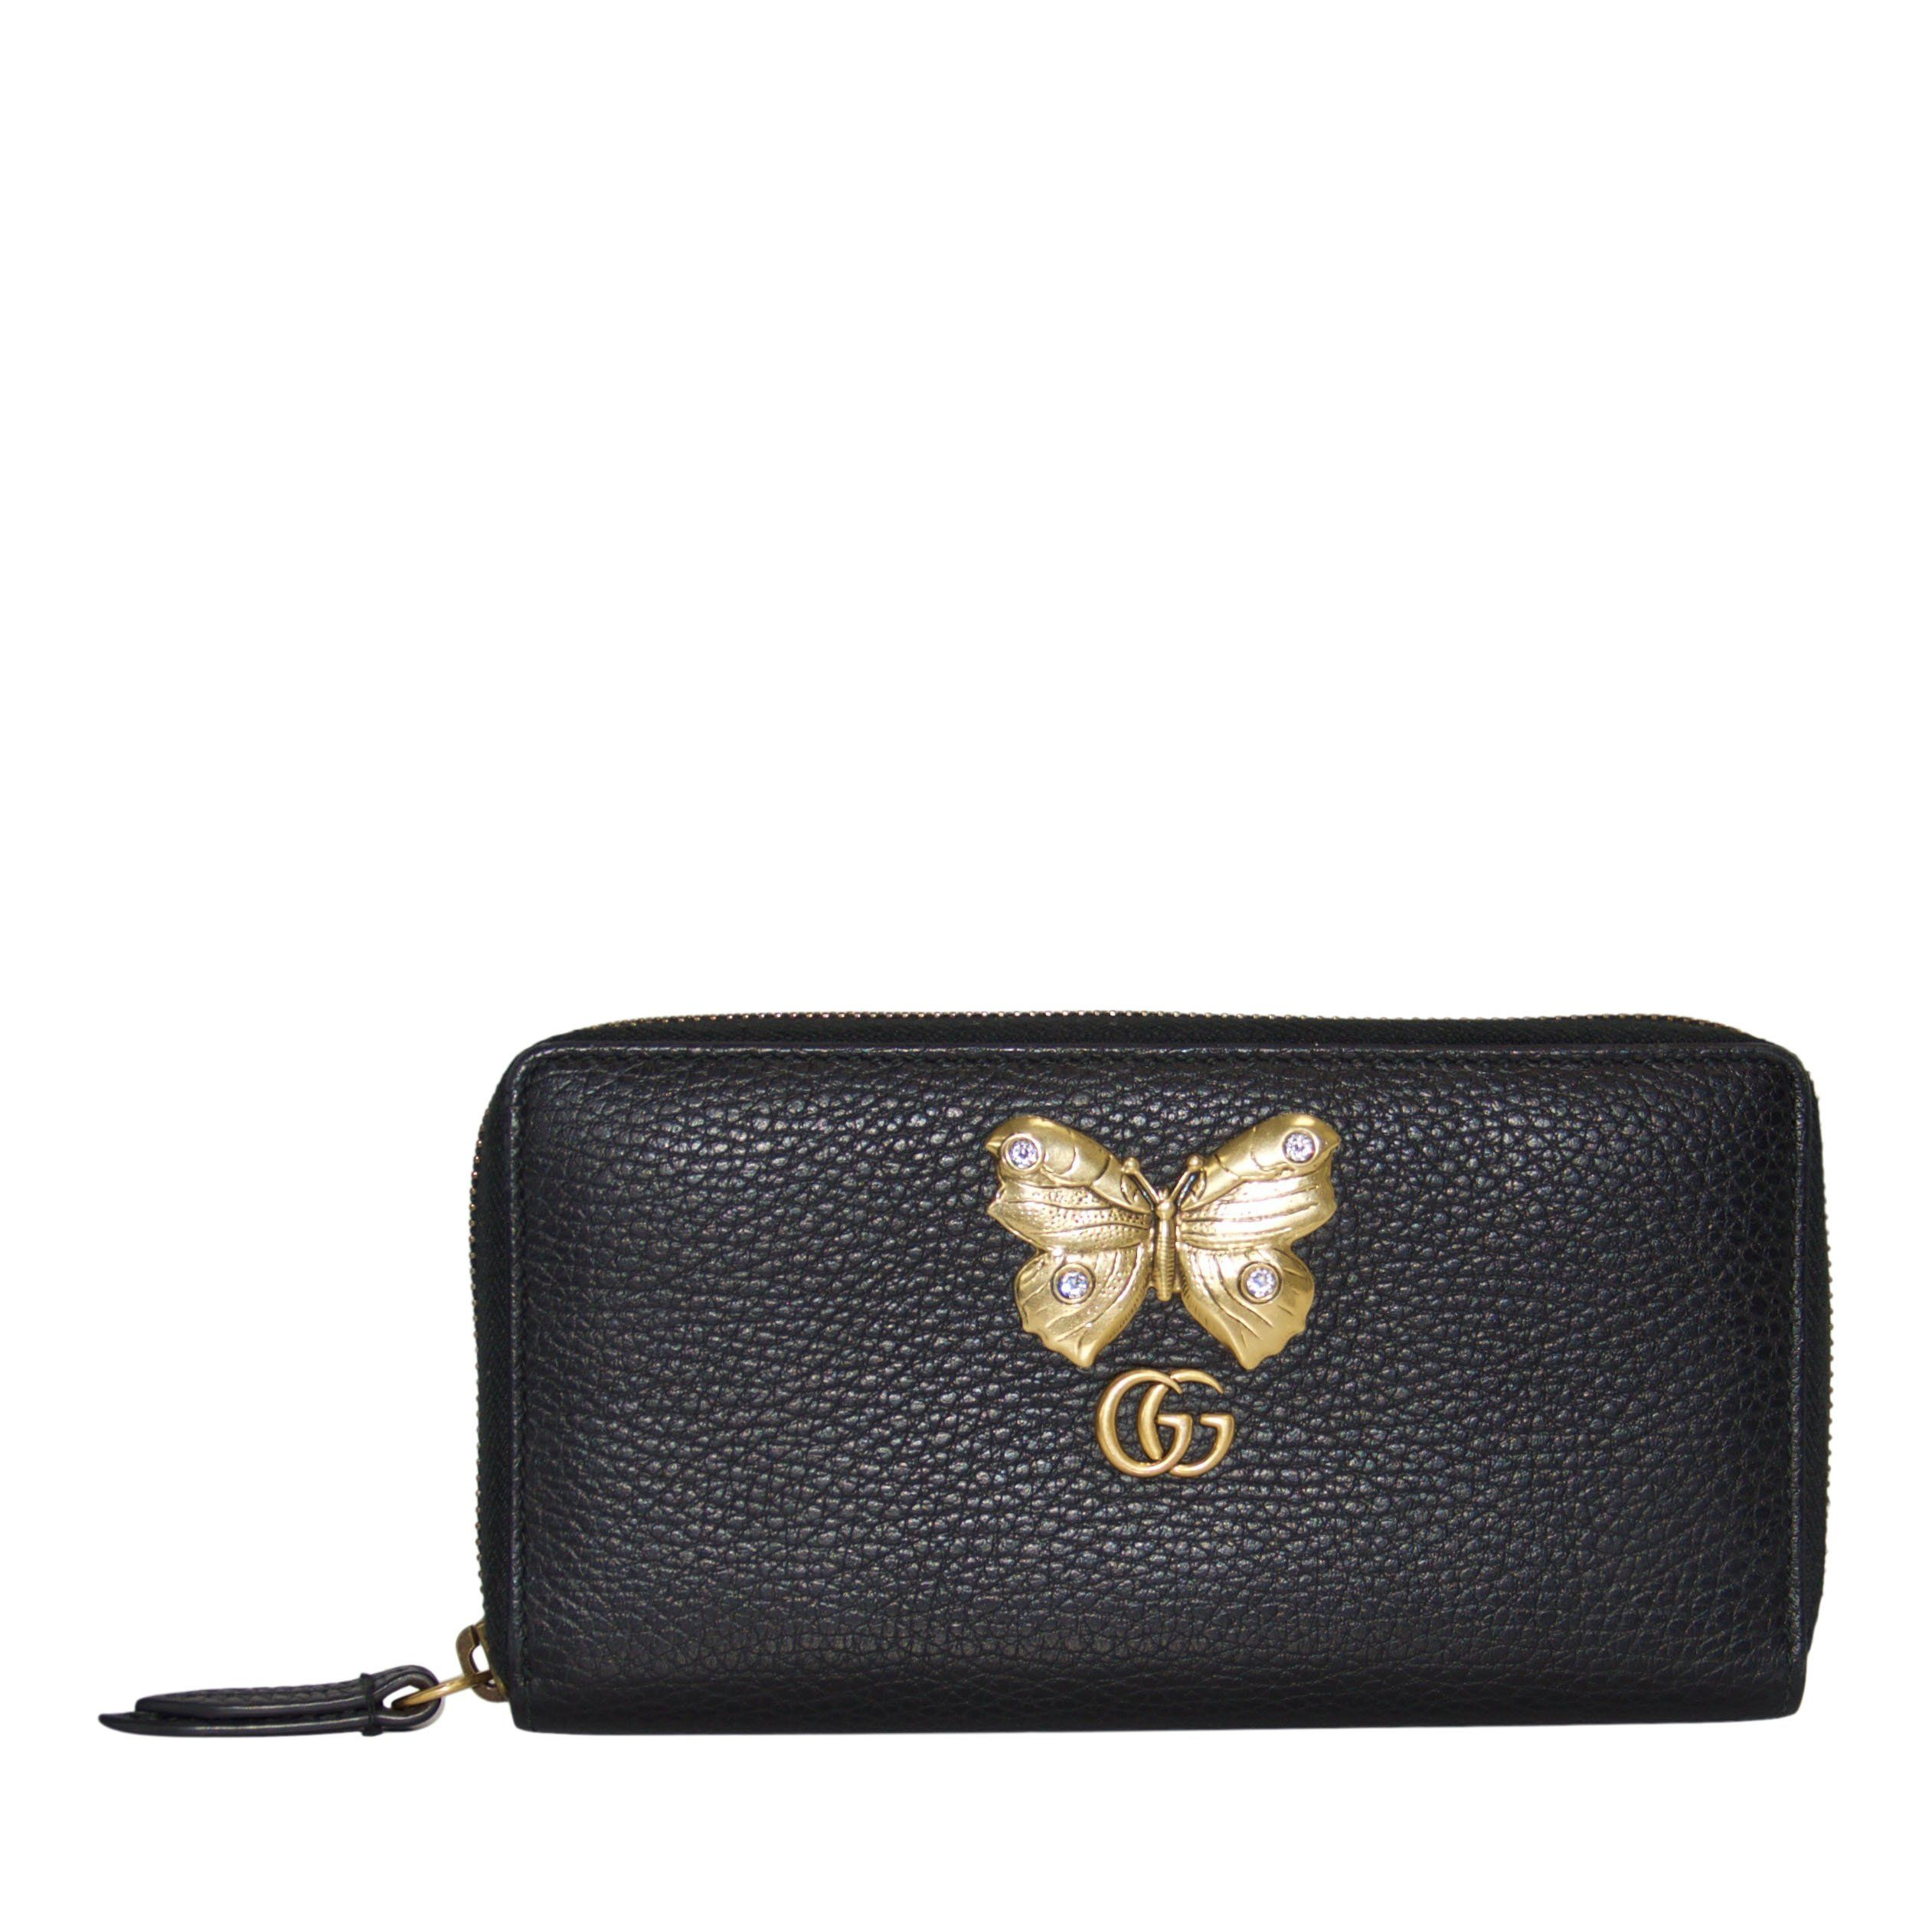 1f7f897349c Gucci Black Leather Zip-Around Wallet with Butterfly - Oliver Jewellery